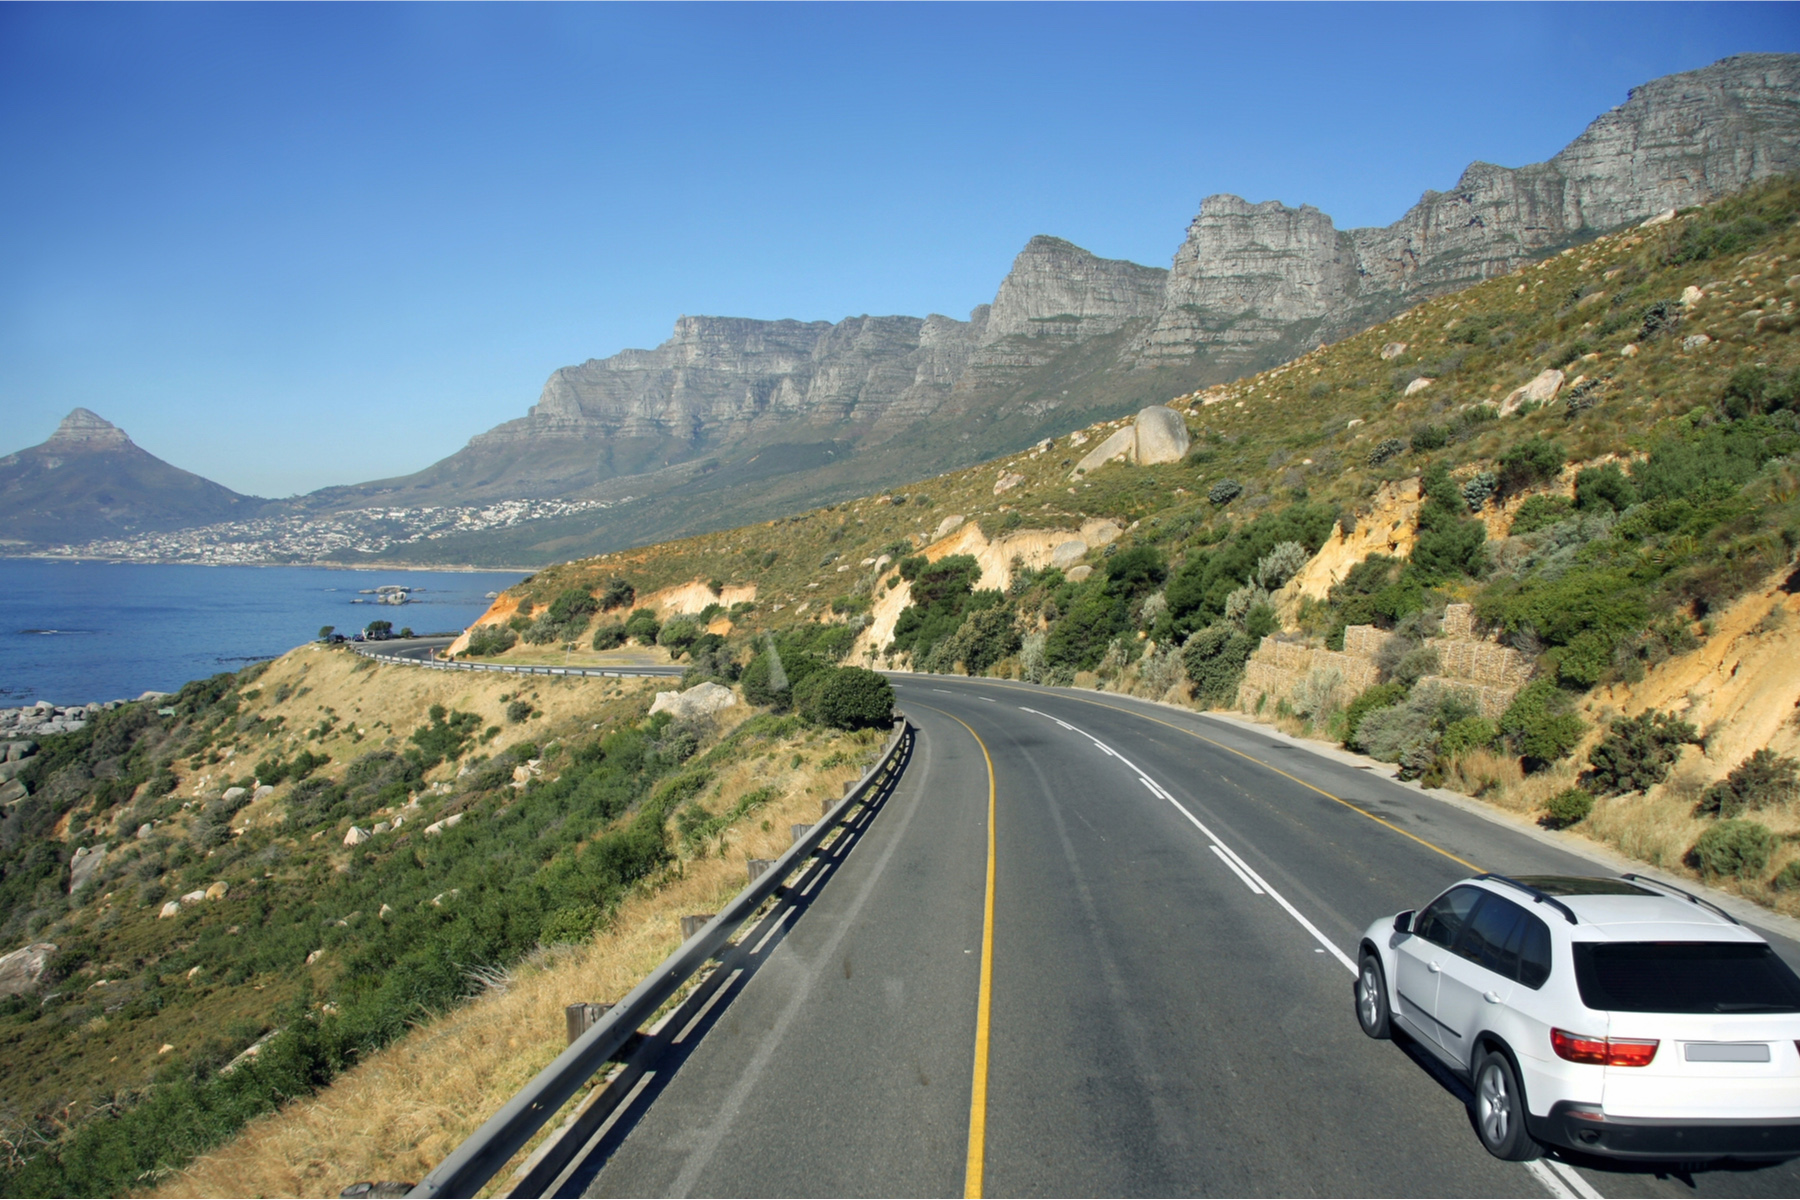 Driving along the South African coast